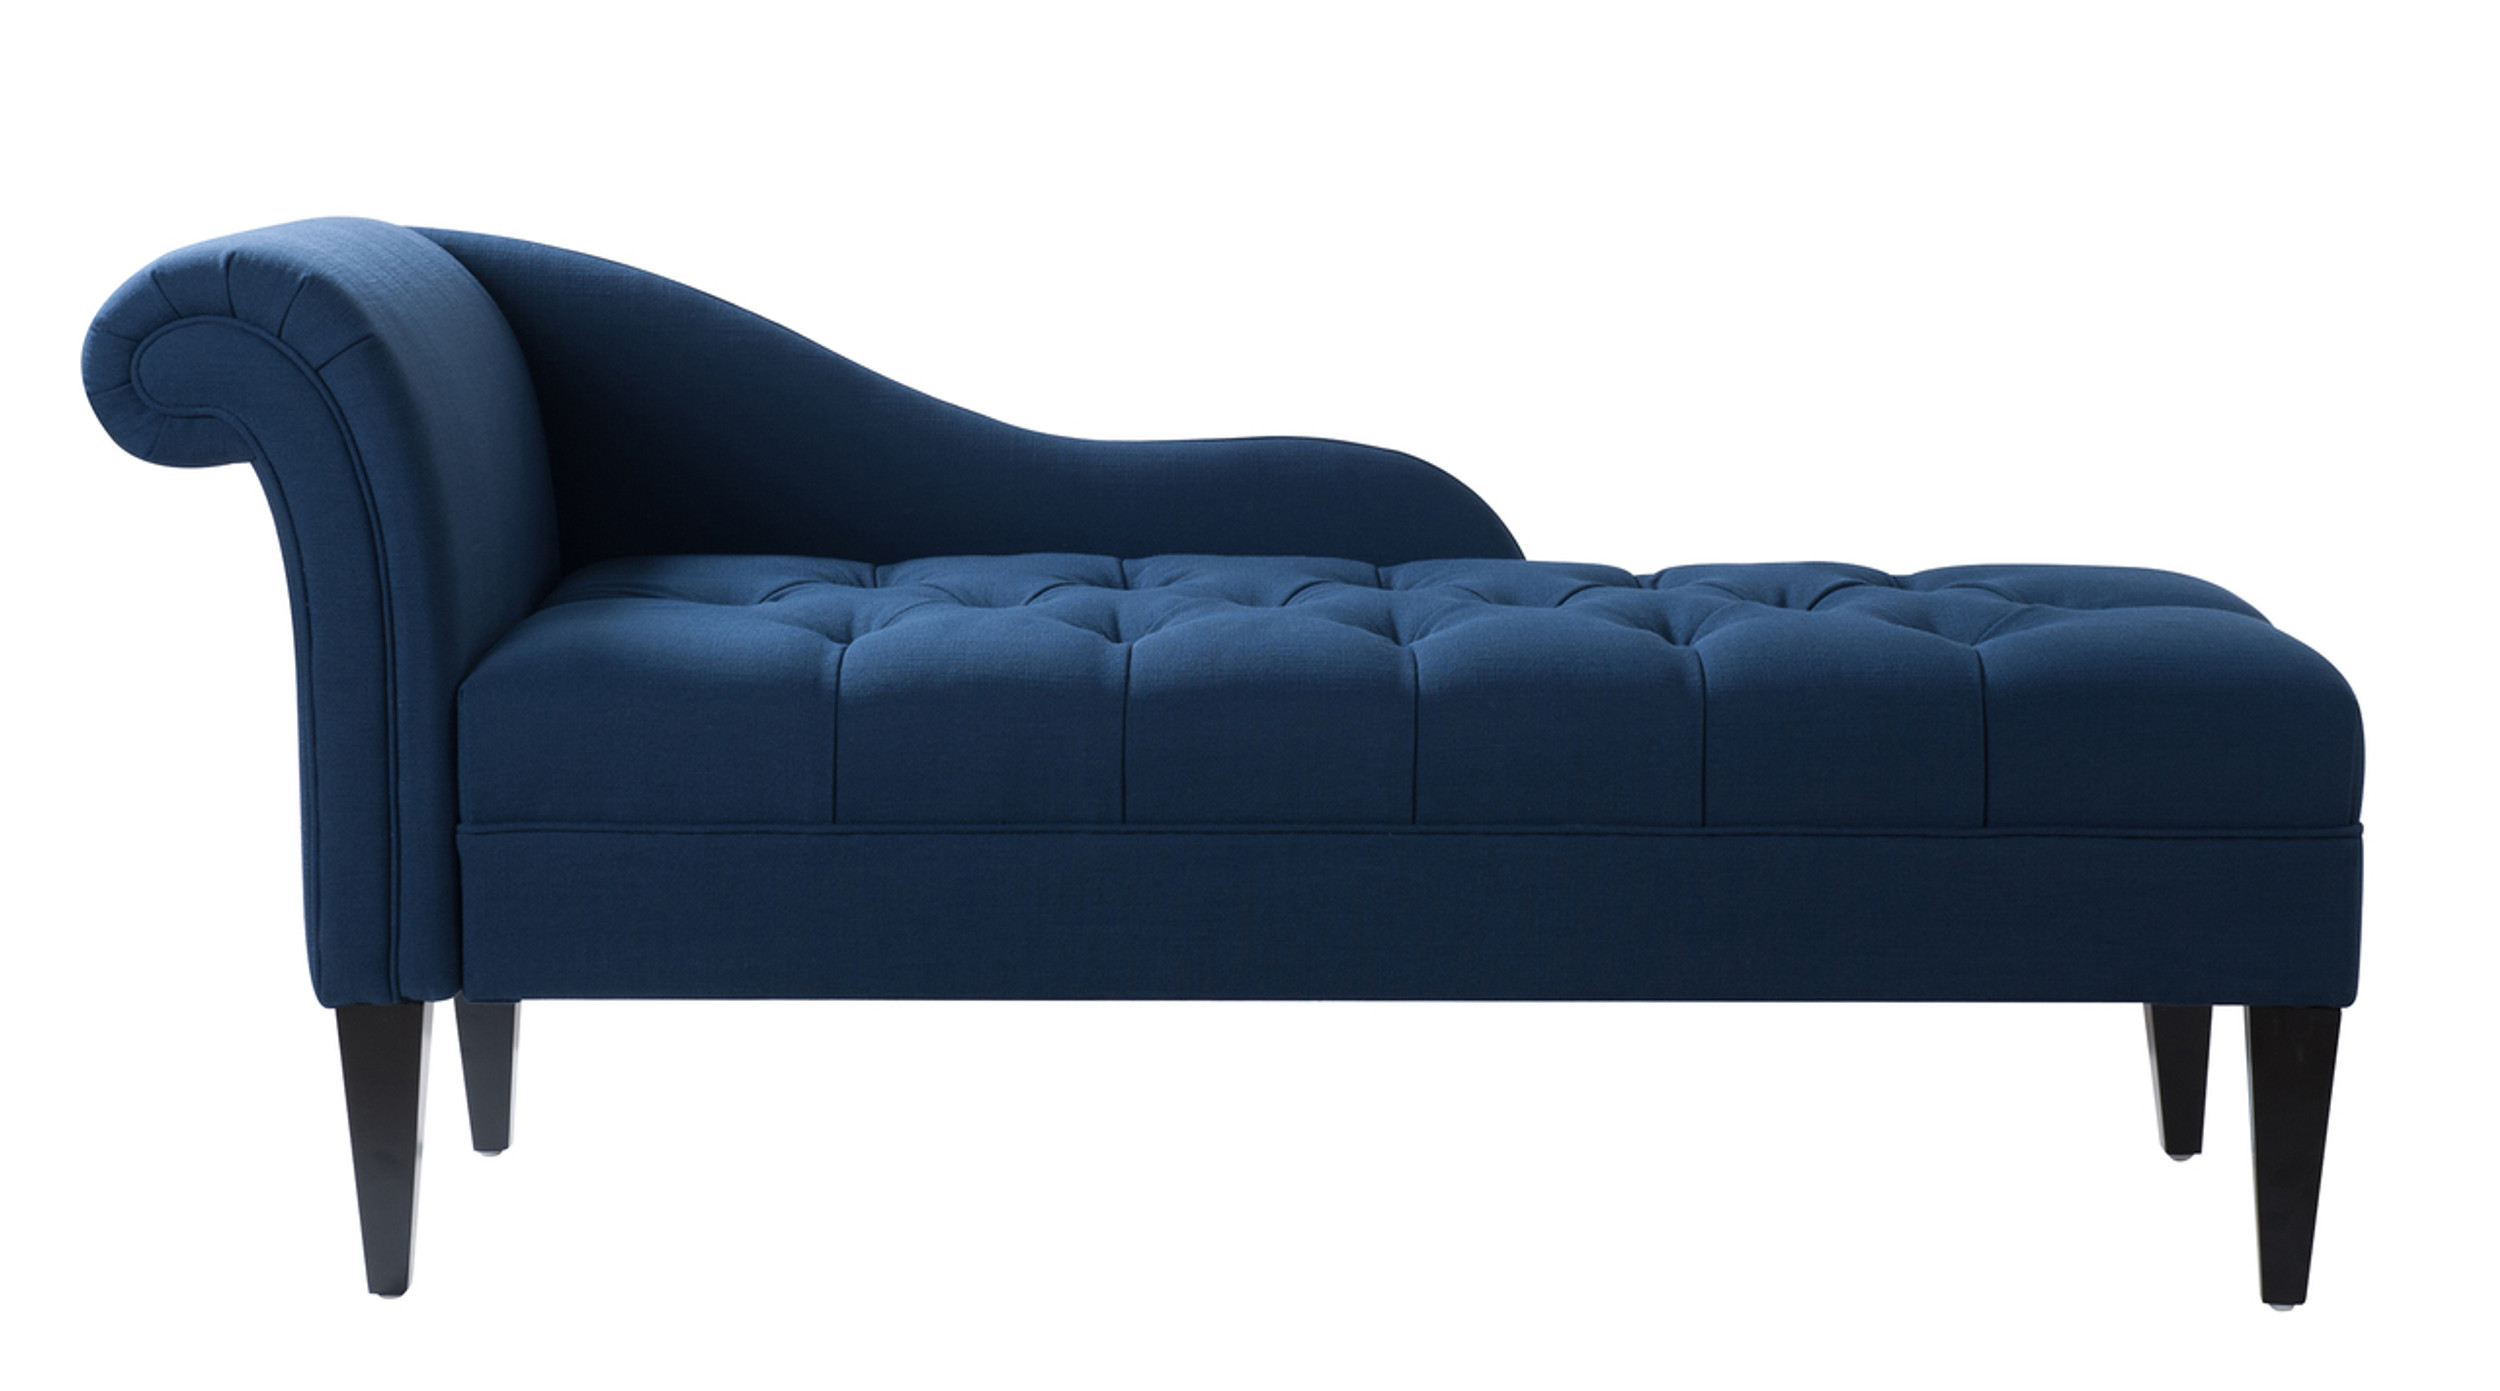 Harrison Tufted Chaise Lounge Midnight Blue Jennifer Taylor Home